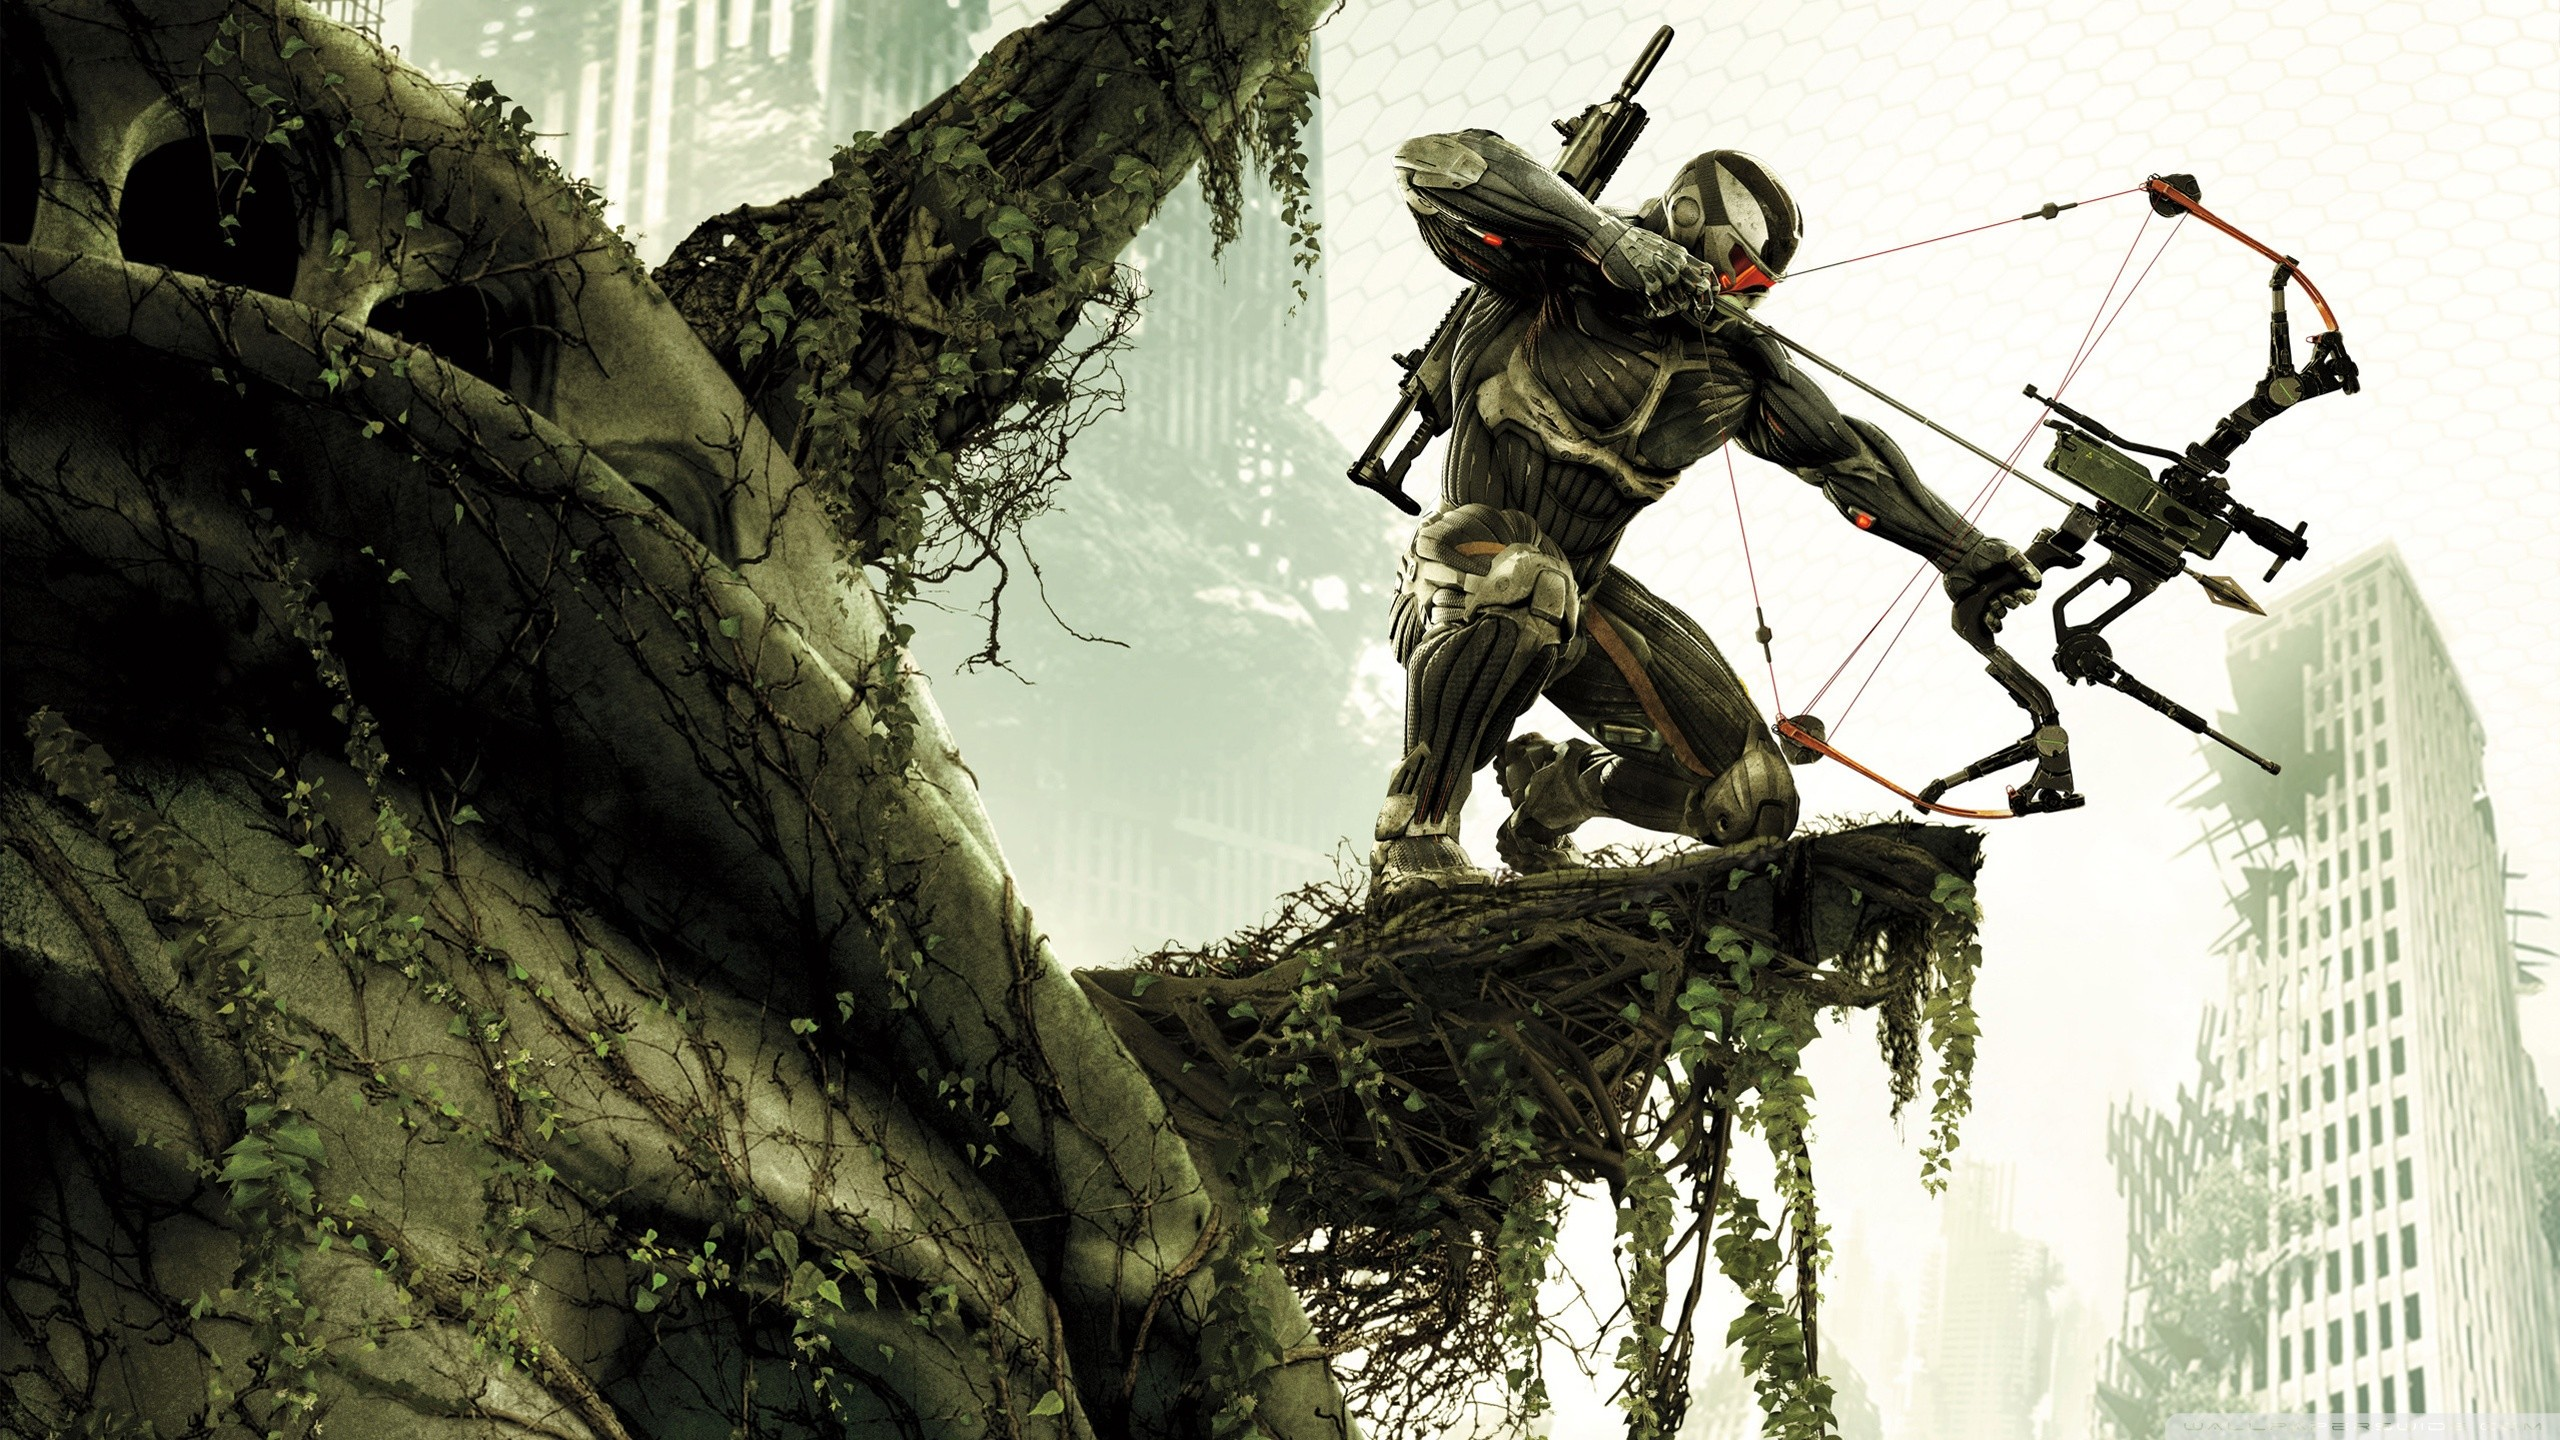 crysis 3 wallpaper 1920x1080 (85+ images)